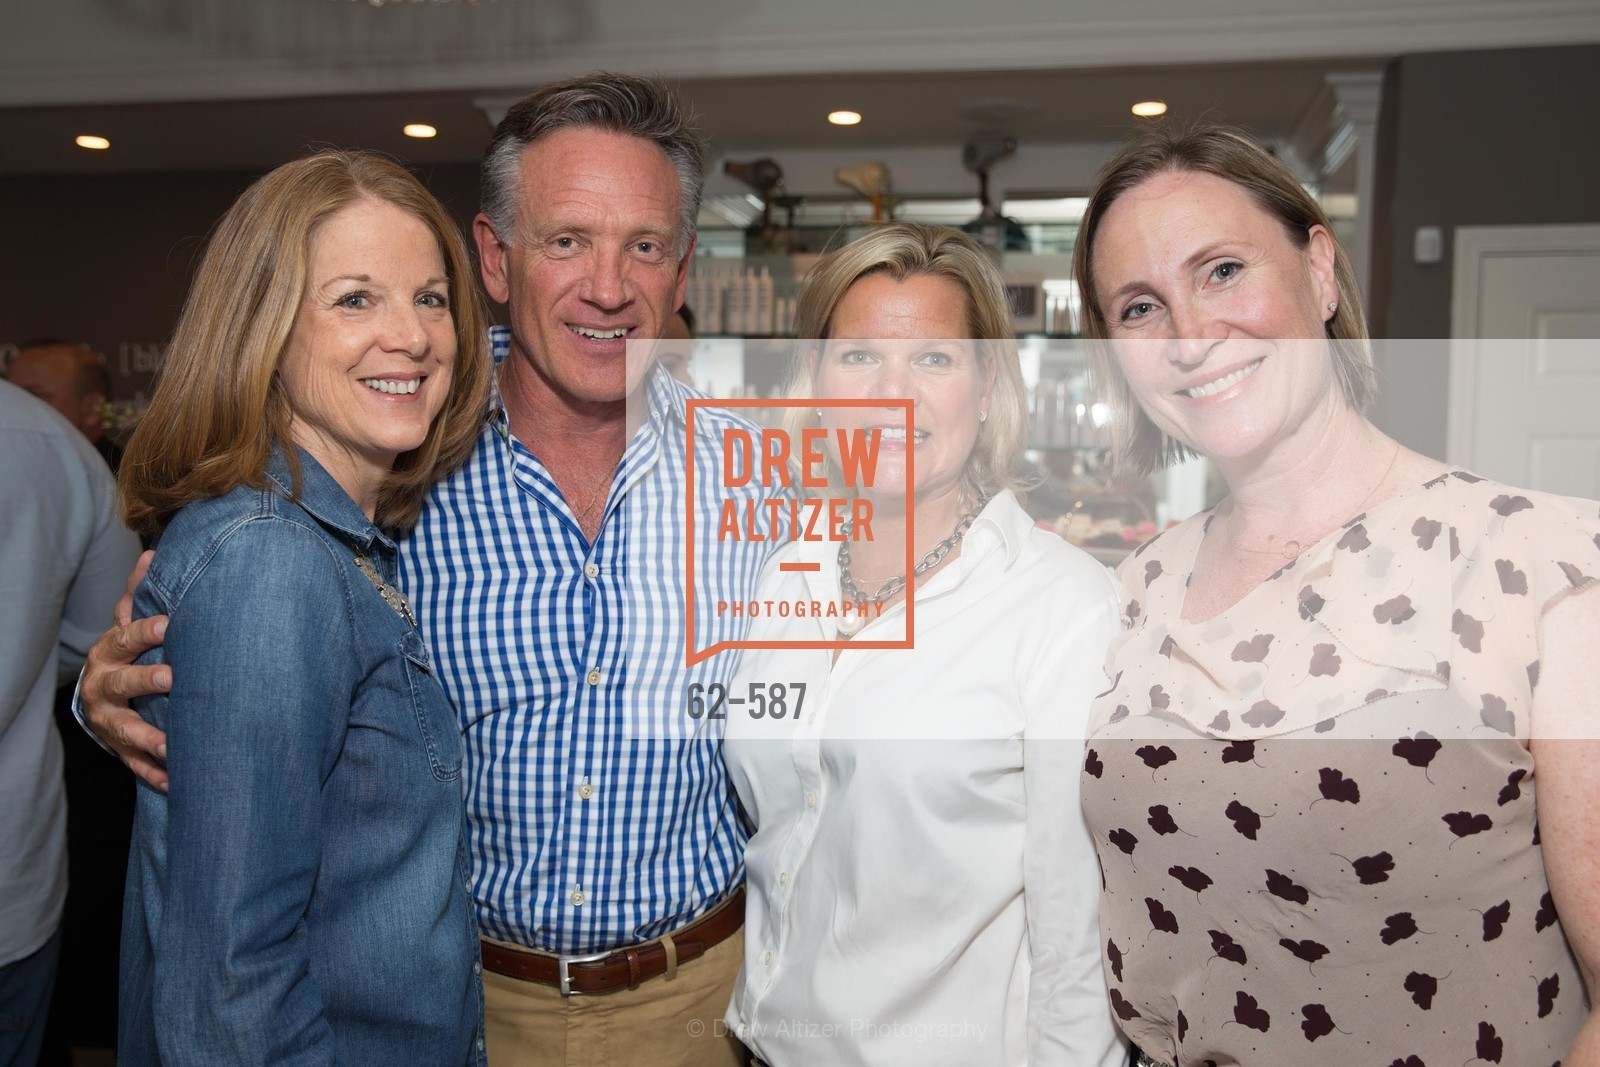 Deborah Naughton, Brit Hahn, Kim Sama, Maureen Kosewic, BLOOM BLOW DRY BAR Grand Opening Party, US, October 2nd, 2014,Drew Altizer, Drew Altizer Photography, full-service event agency, private events, San Francisco photographer, photographer California